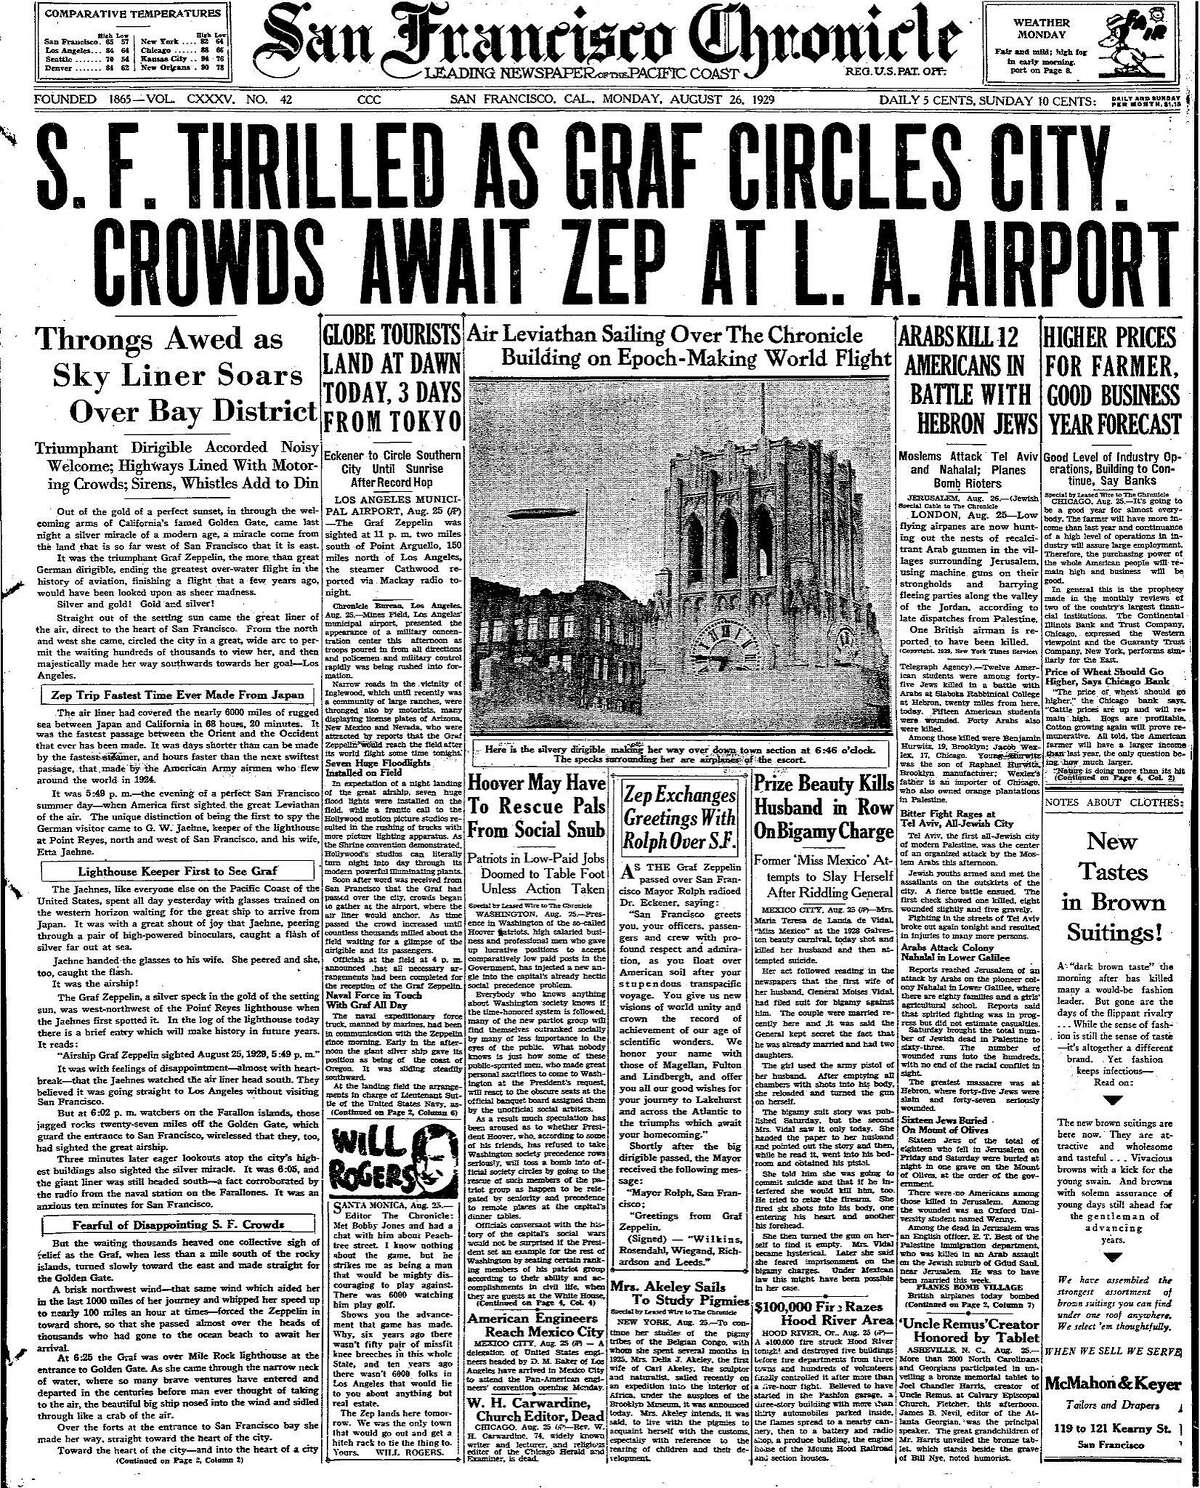 Historic Front page Graf Zeppelin circles San Francisco Chronicle building in the foreground. August 26, 1929 paper Historic Chronicle front page